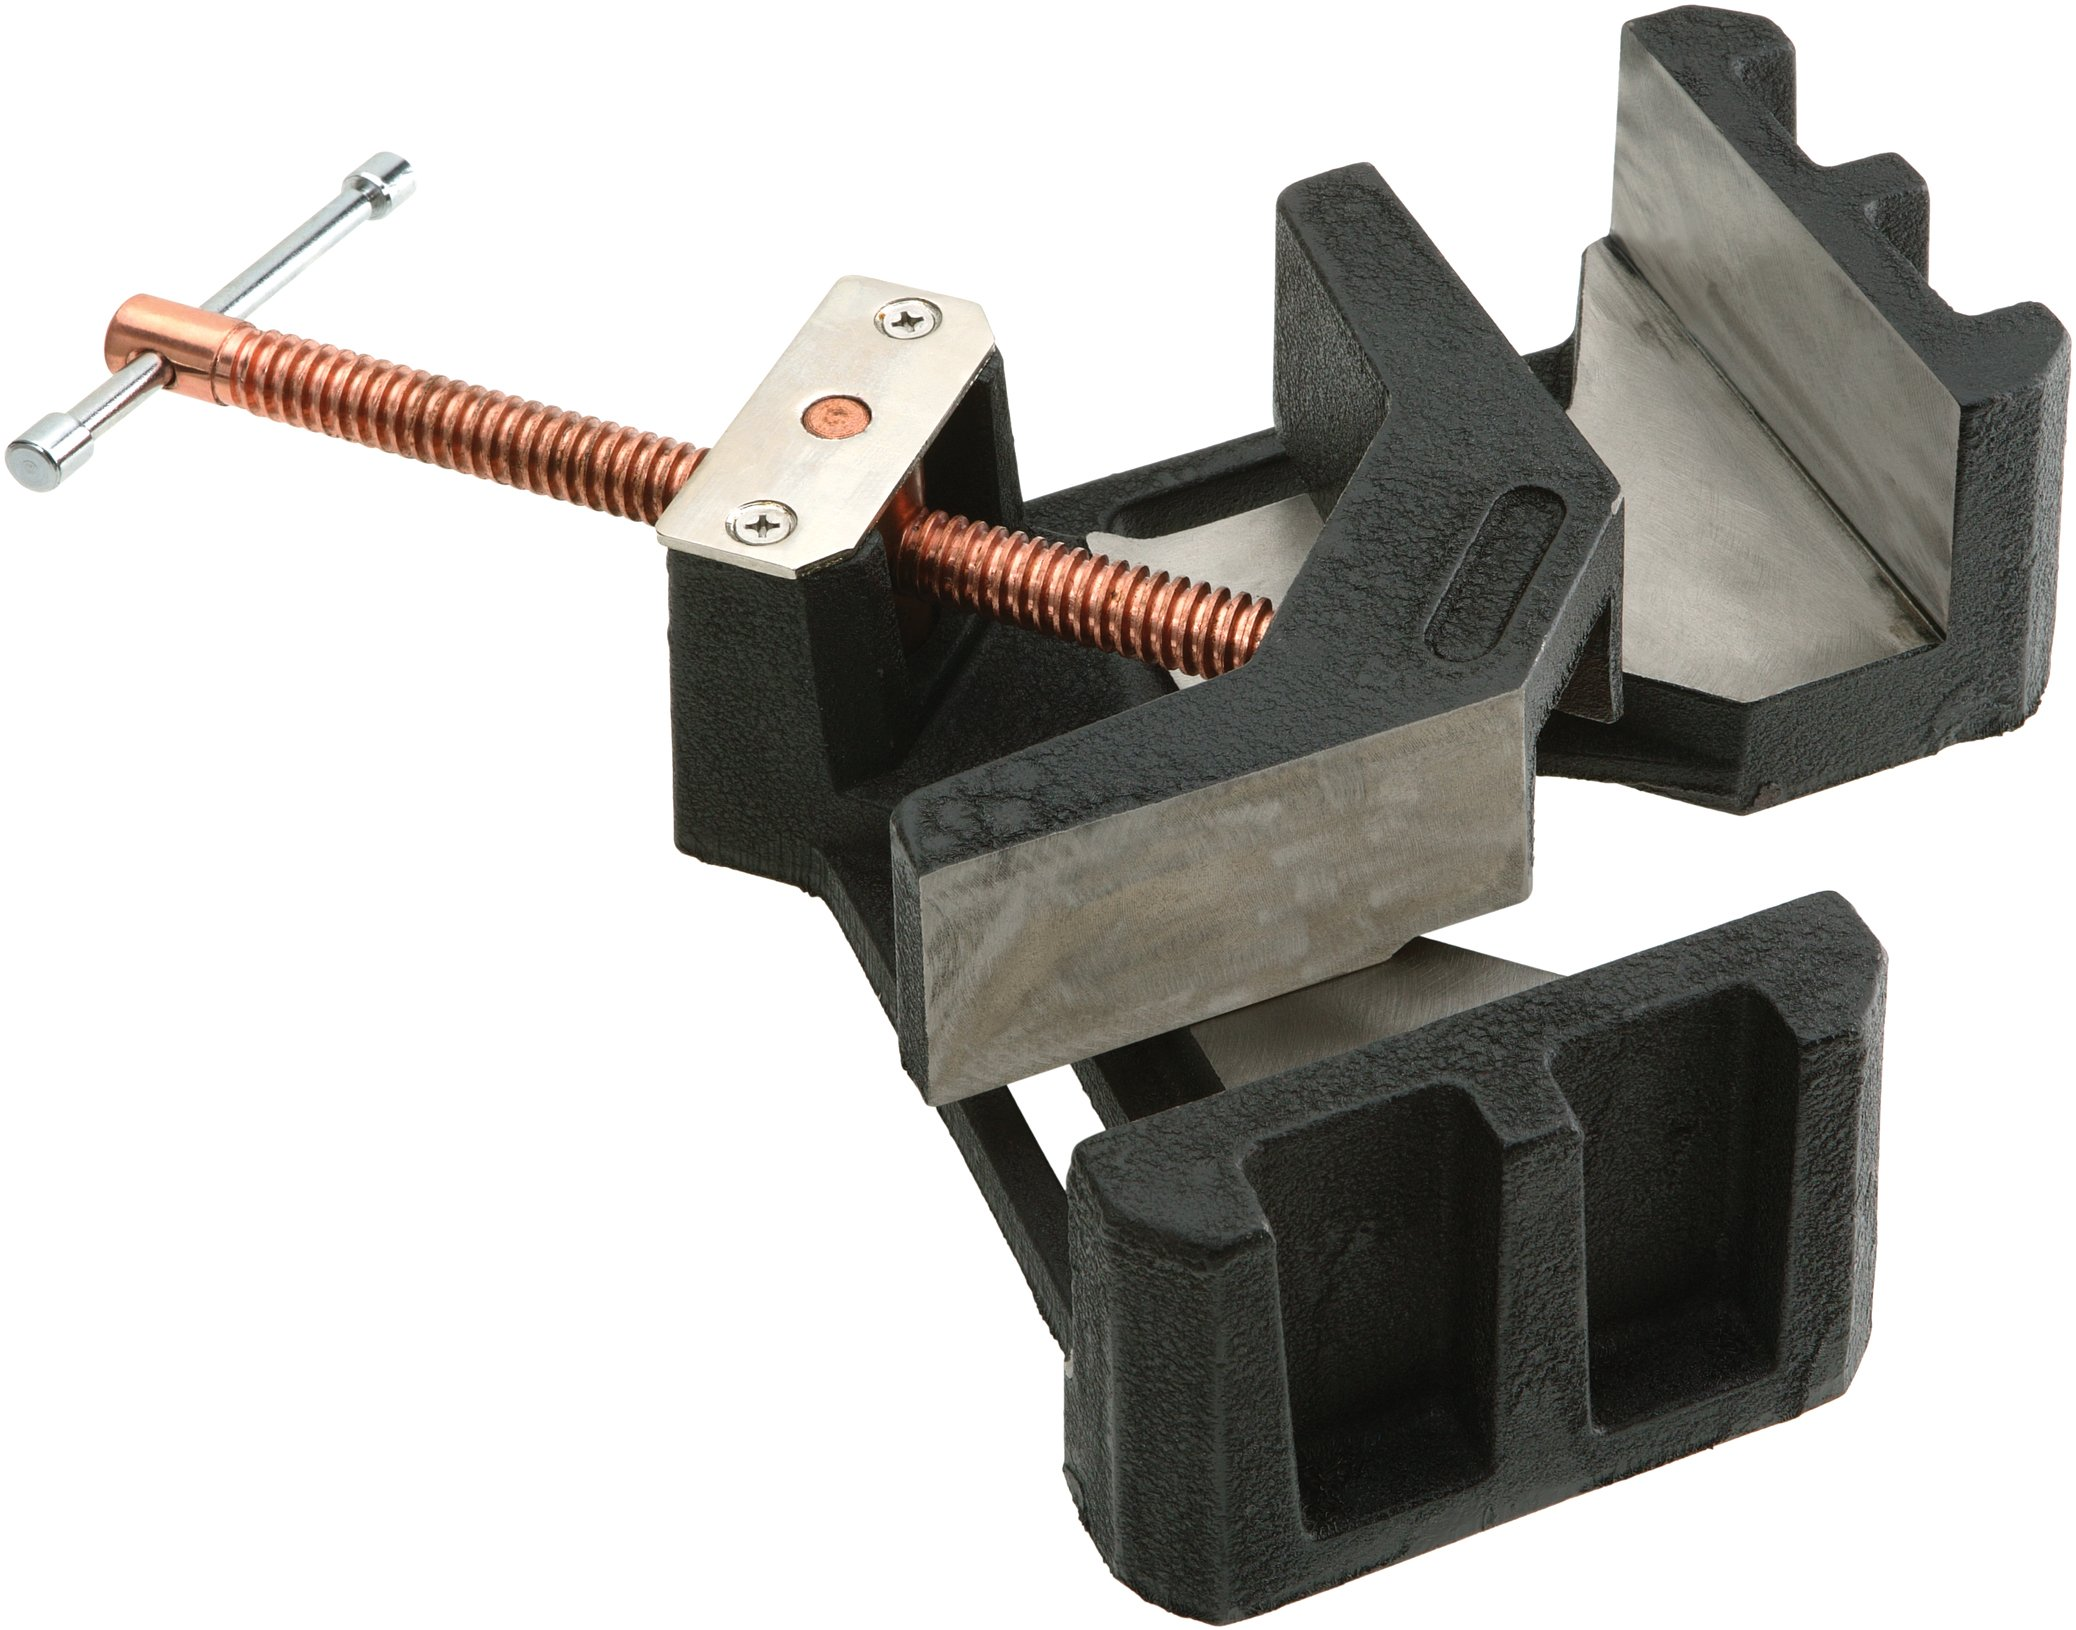 Grizzly G8029 90-Degree Angle Clamp, 4-Inch Opening by Grizzly